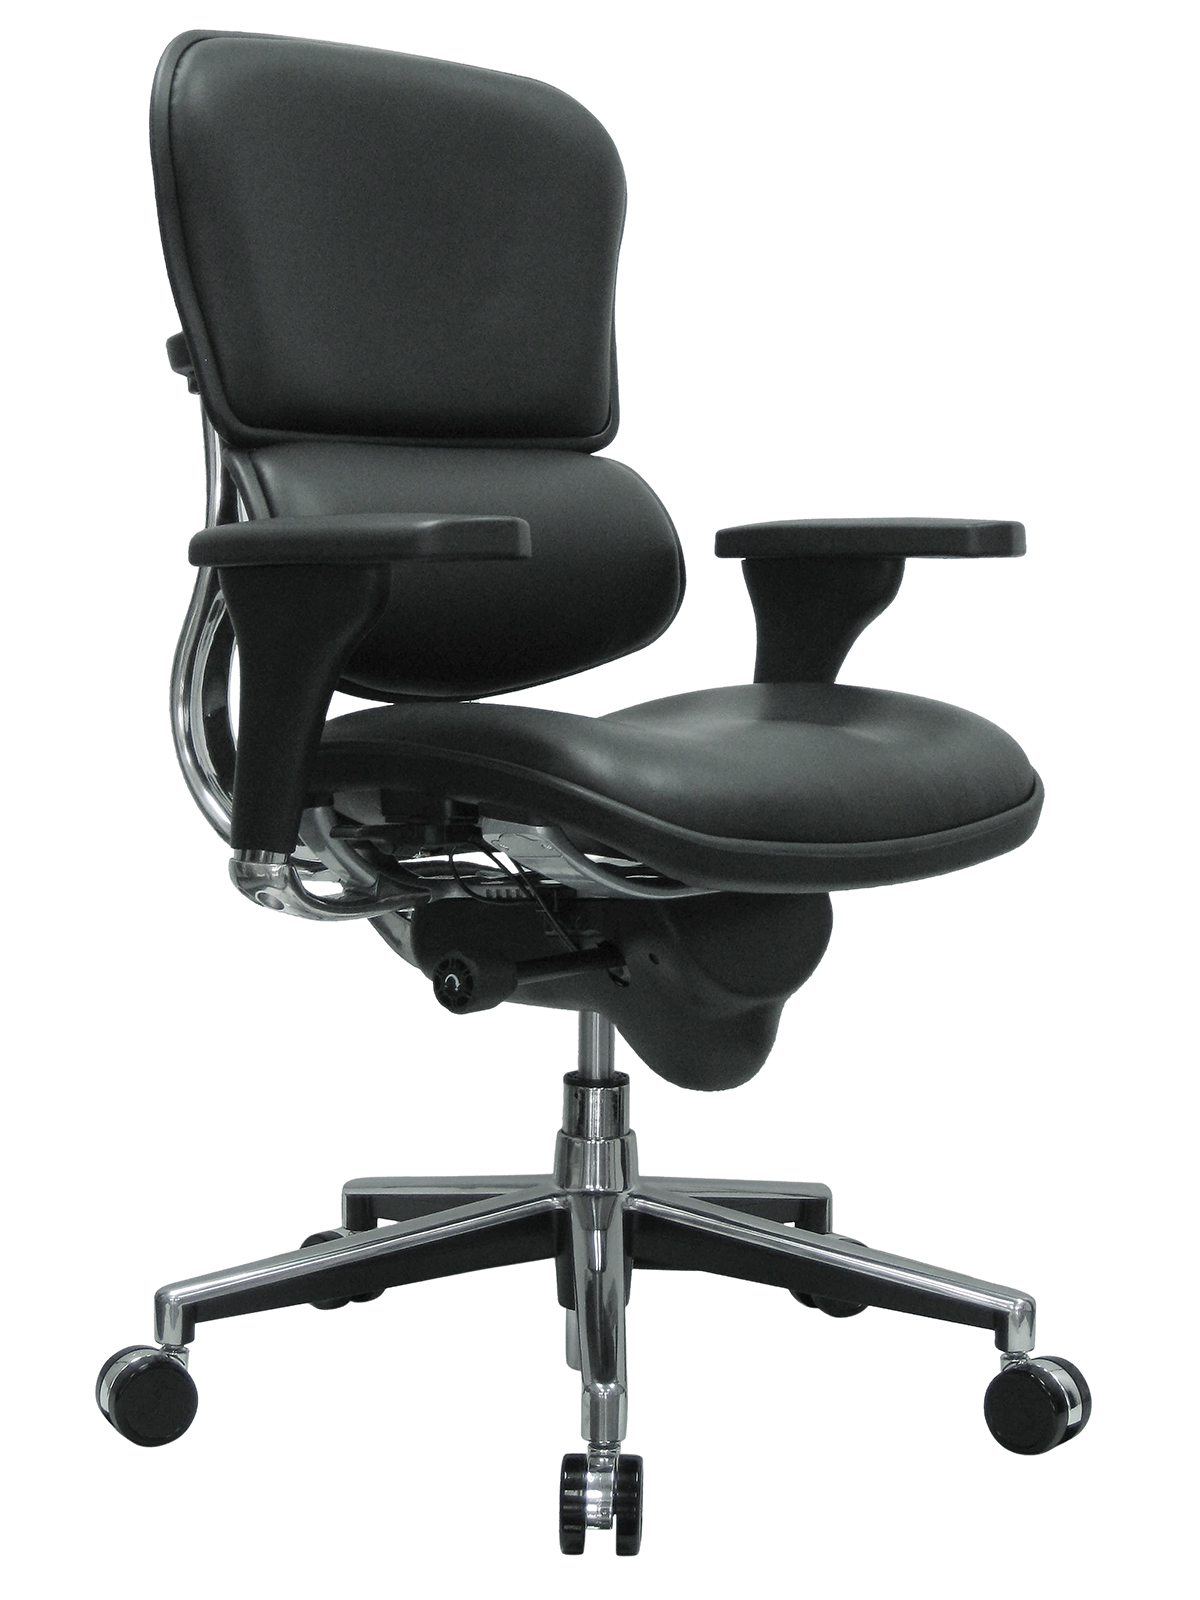 Eurotech Ergo Mid Back-Leather black